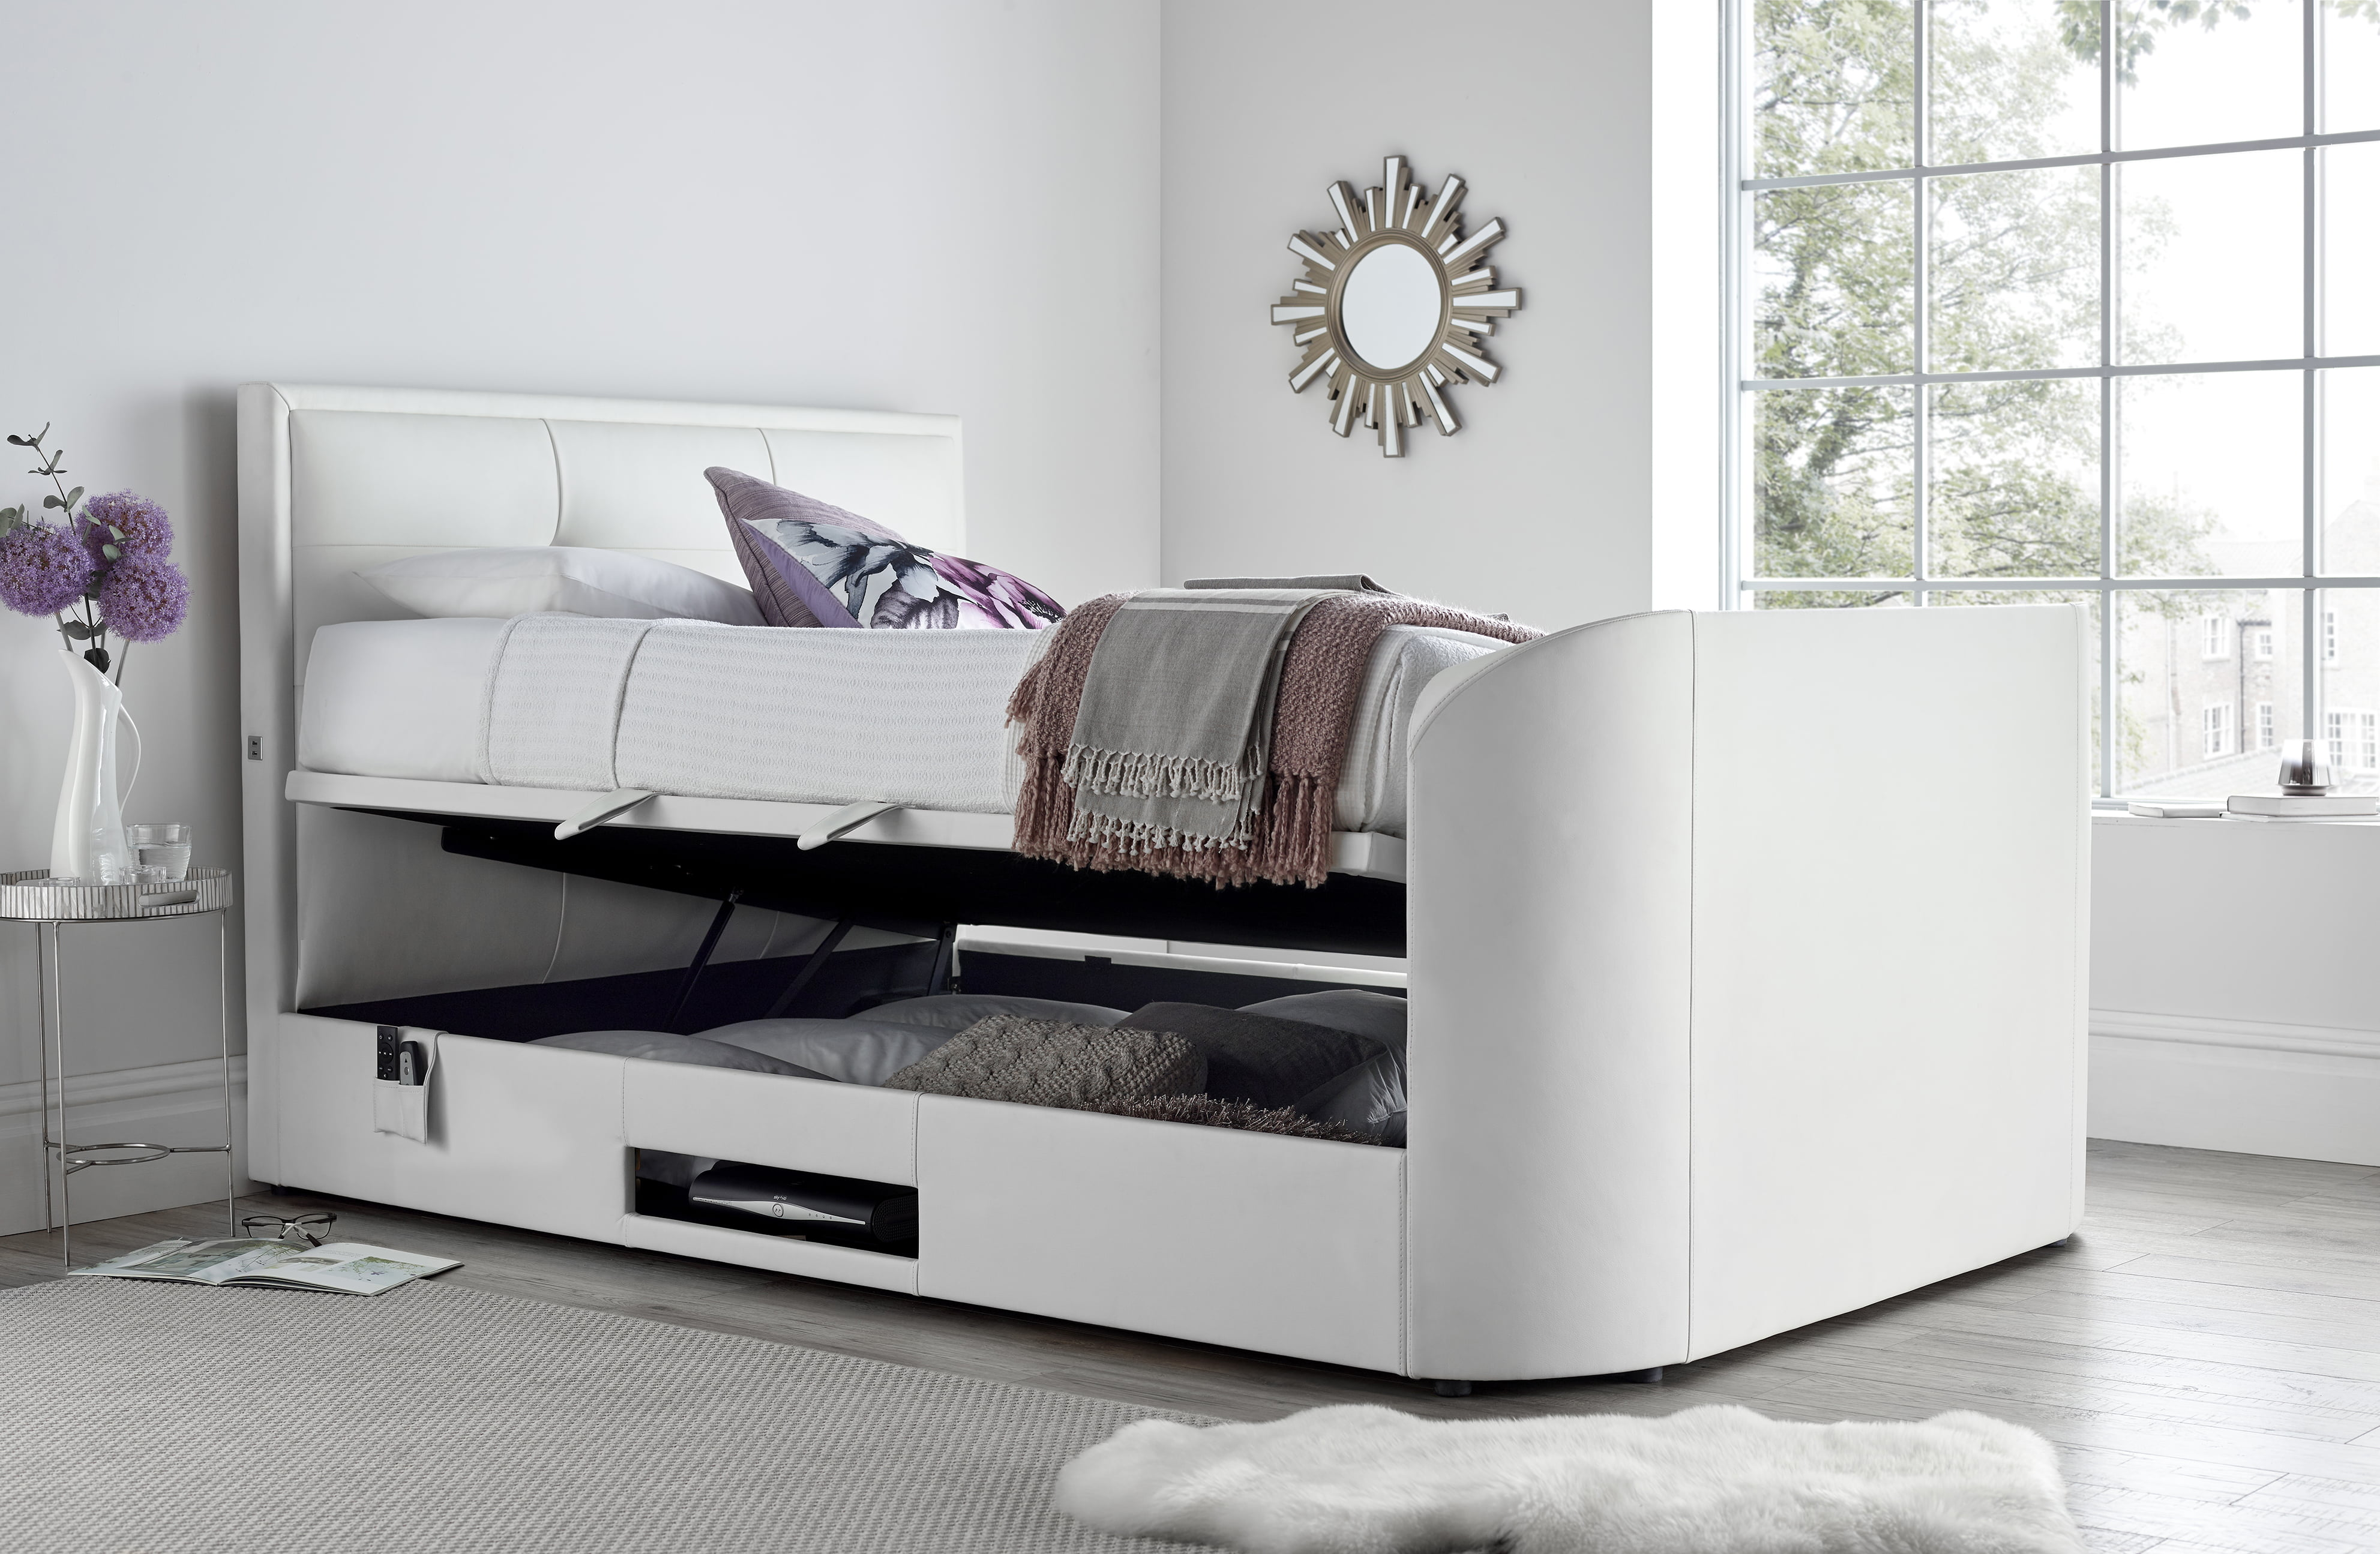 The Jetson Ottoman Media Super King Size Tv Bed 0